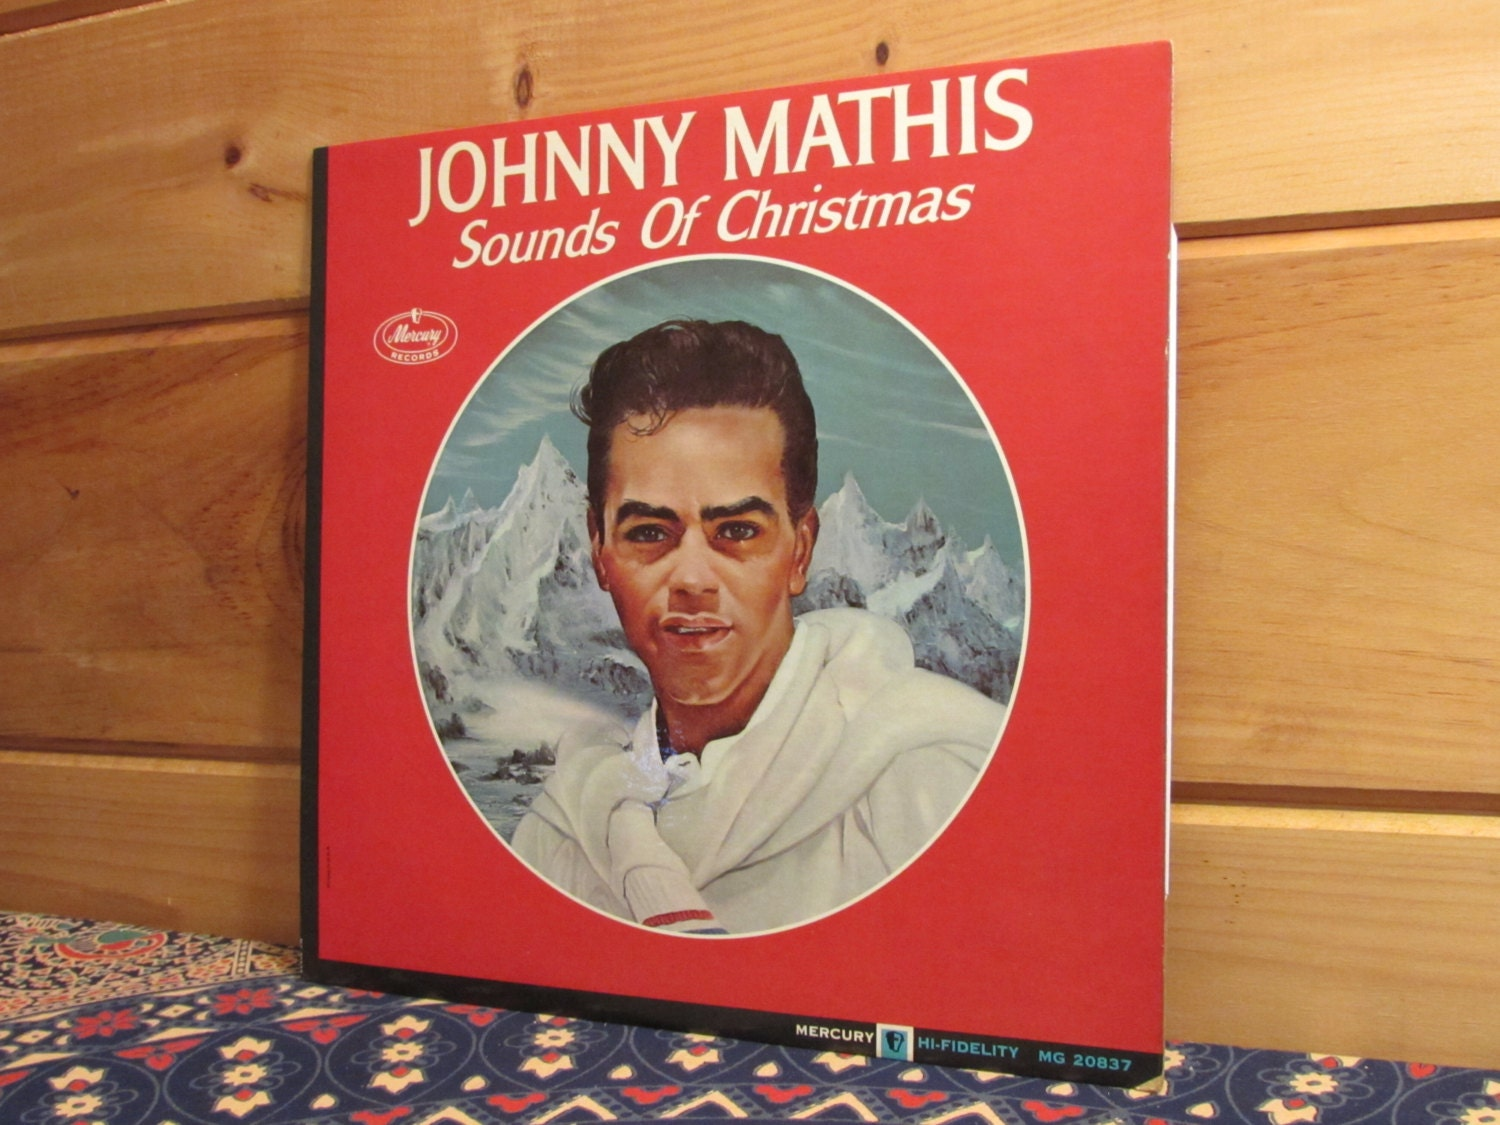 Johnny Mathis Sounds Of Christmas 33 1/3 Vinyl Record | Etsy